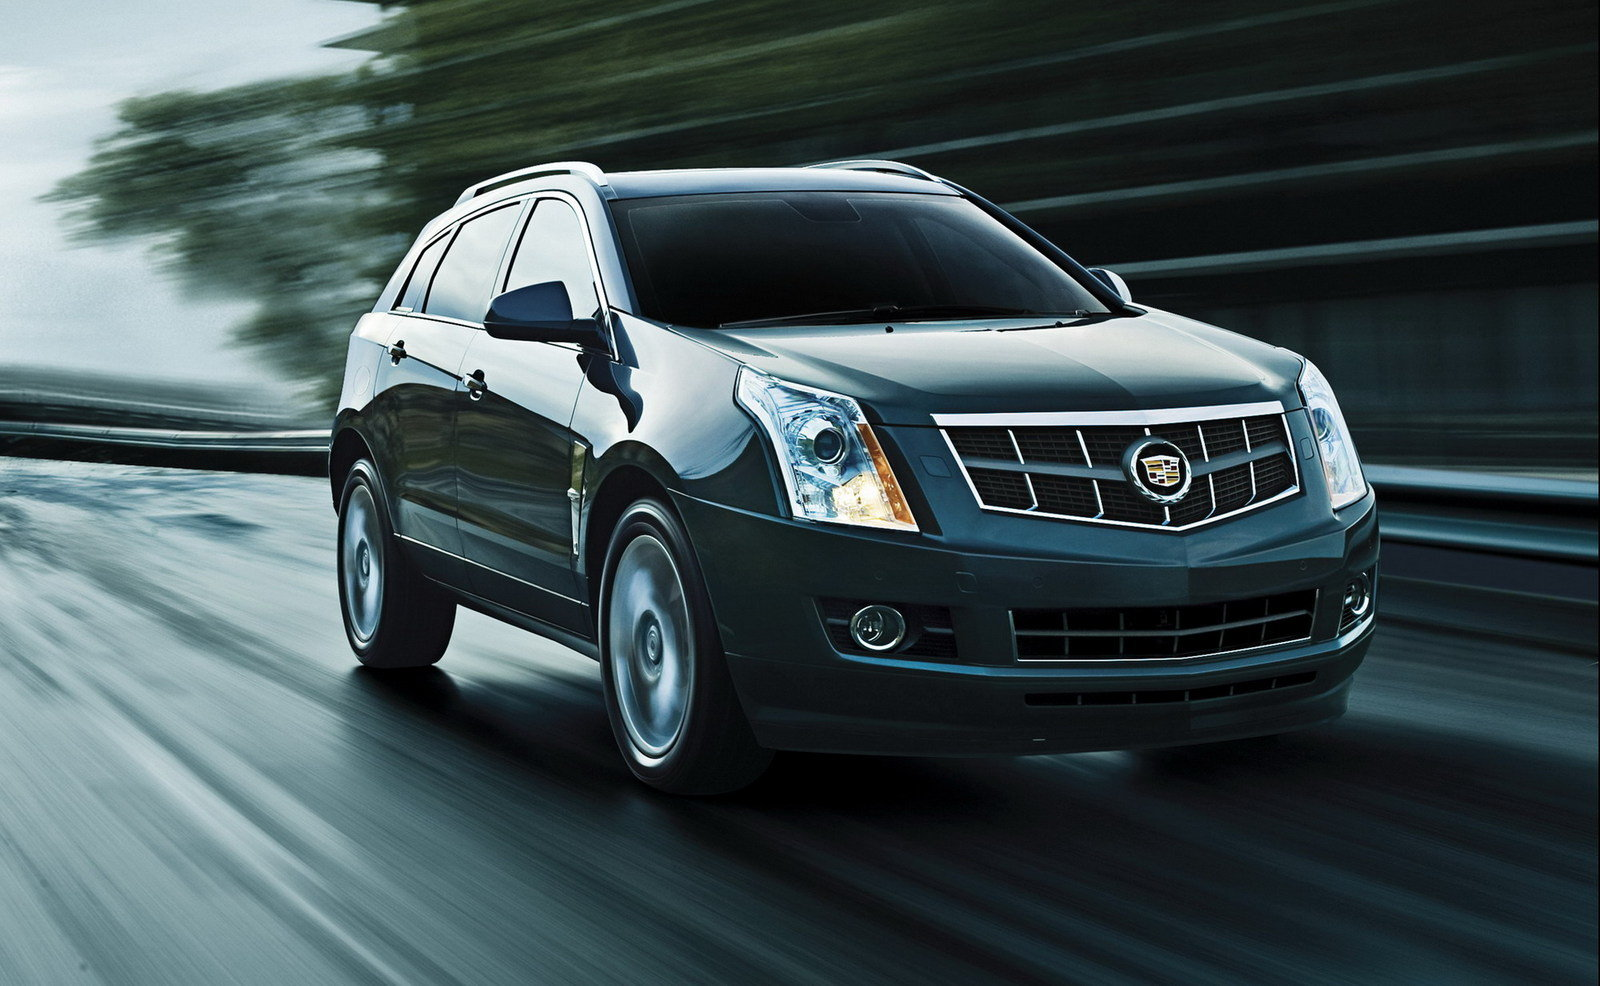 2010 2012 Cadillac Srx Pictures Photos Wallpapers And